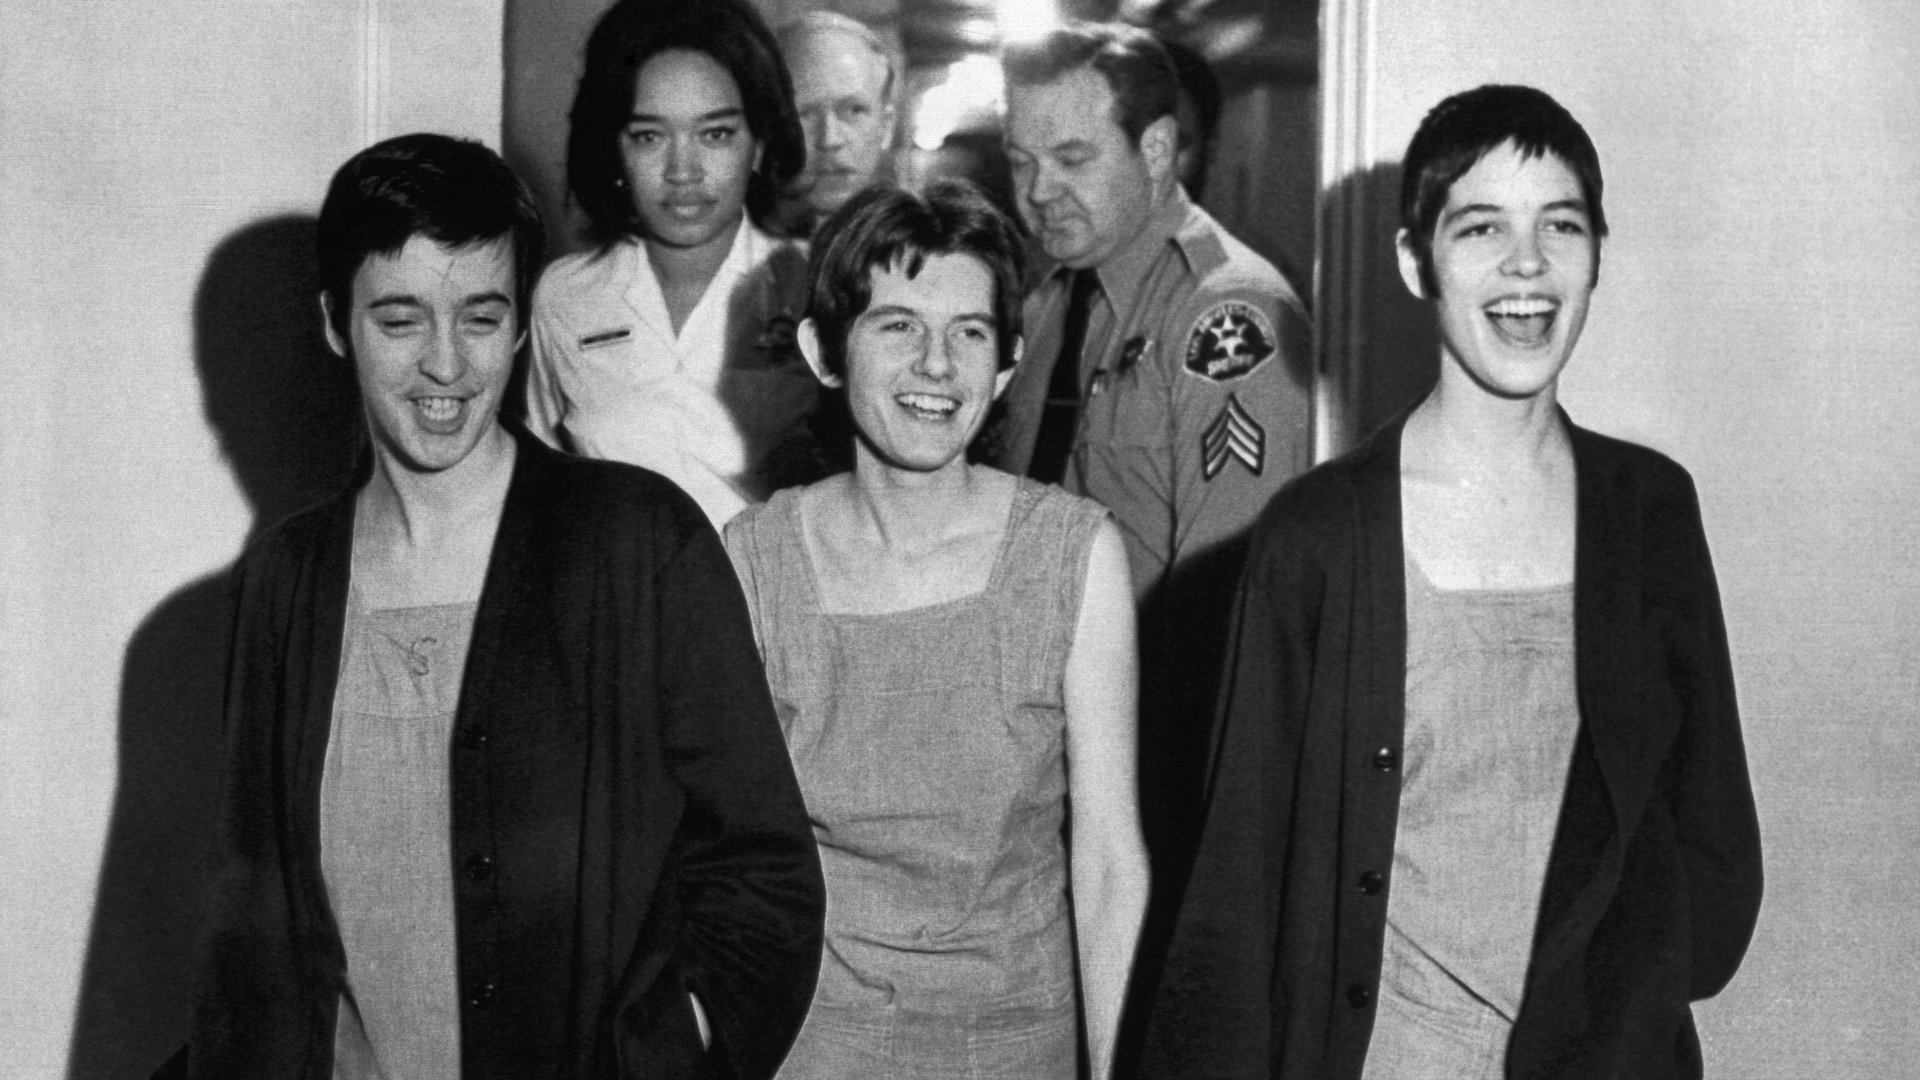 Who Were Charles Manson's 'Lost Girls'?